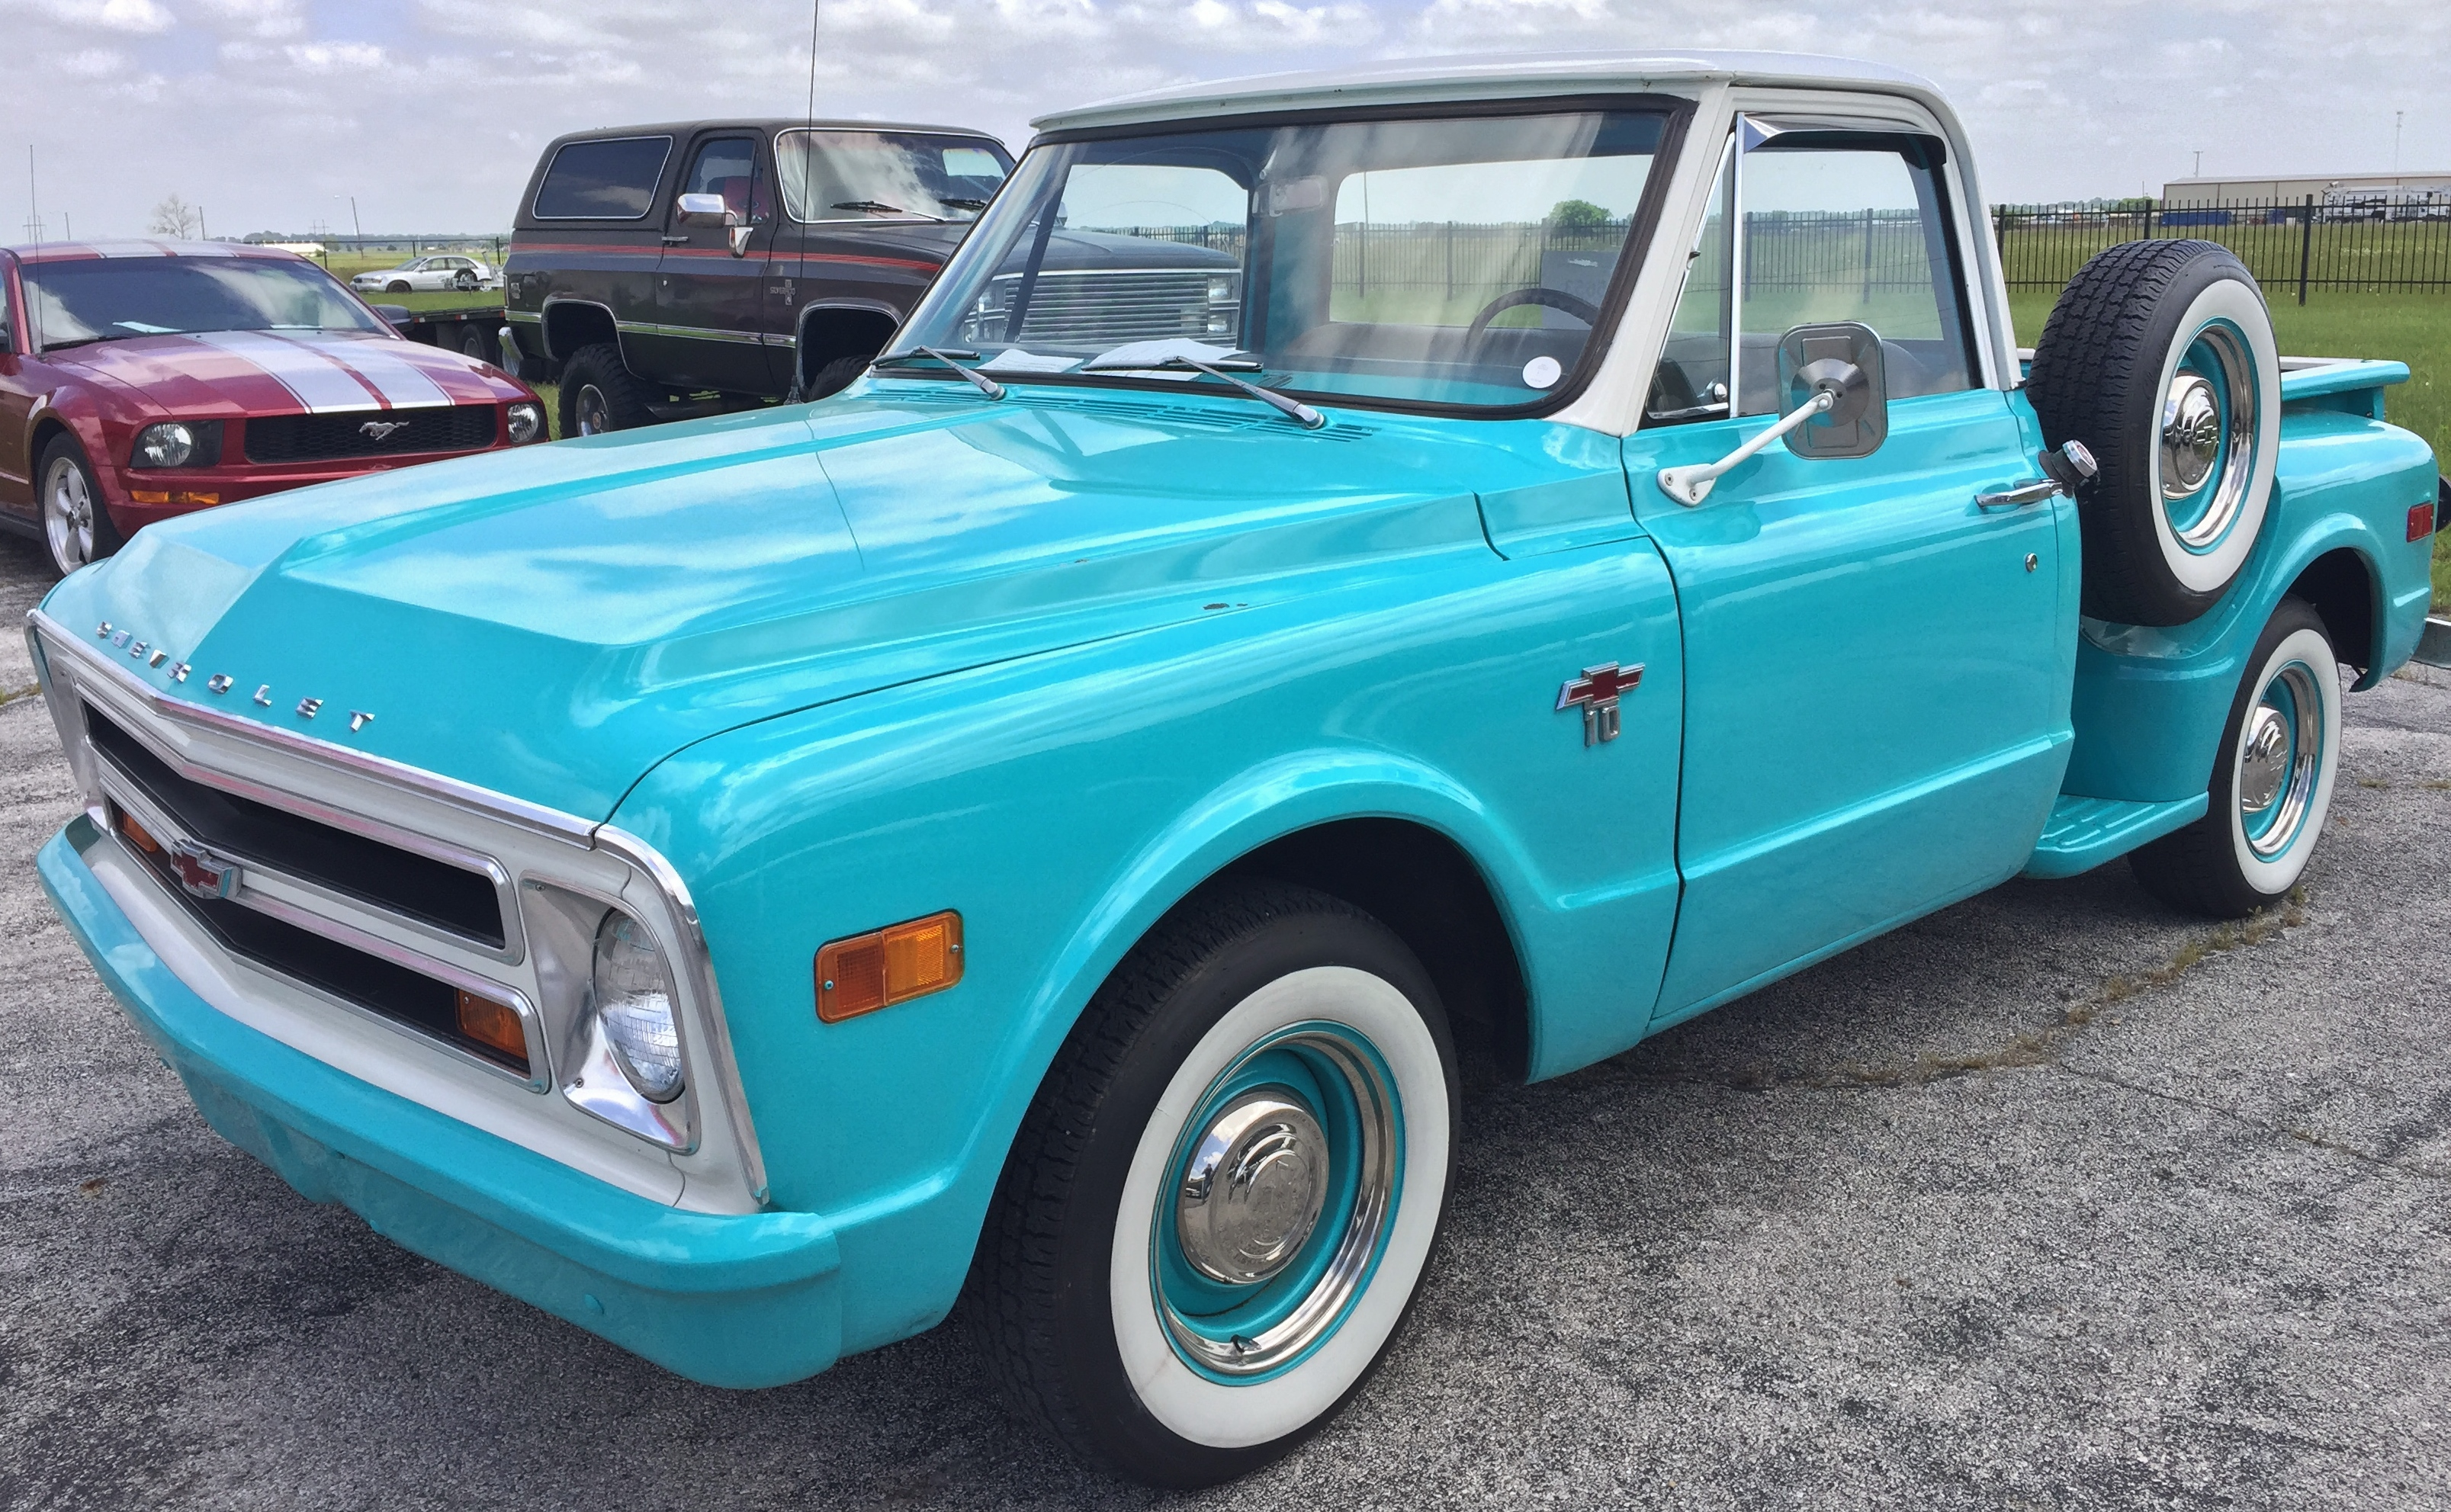 1968 Chevy Pickup Truck Chevrolet C10 Step Side Lone Star Classic Carslone Cars Img 0515 0517